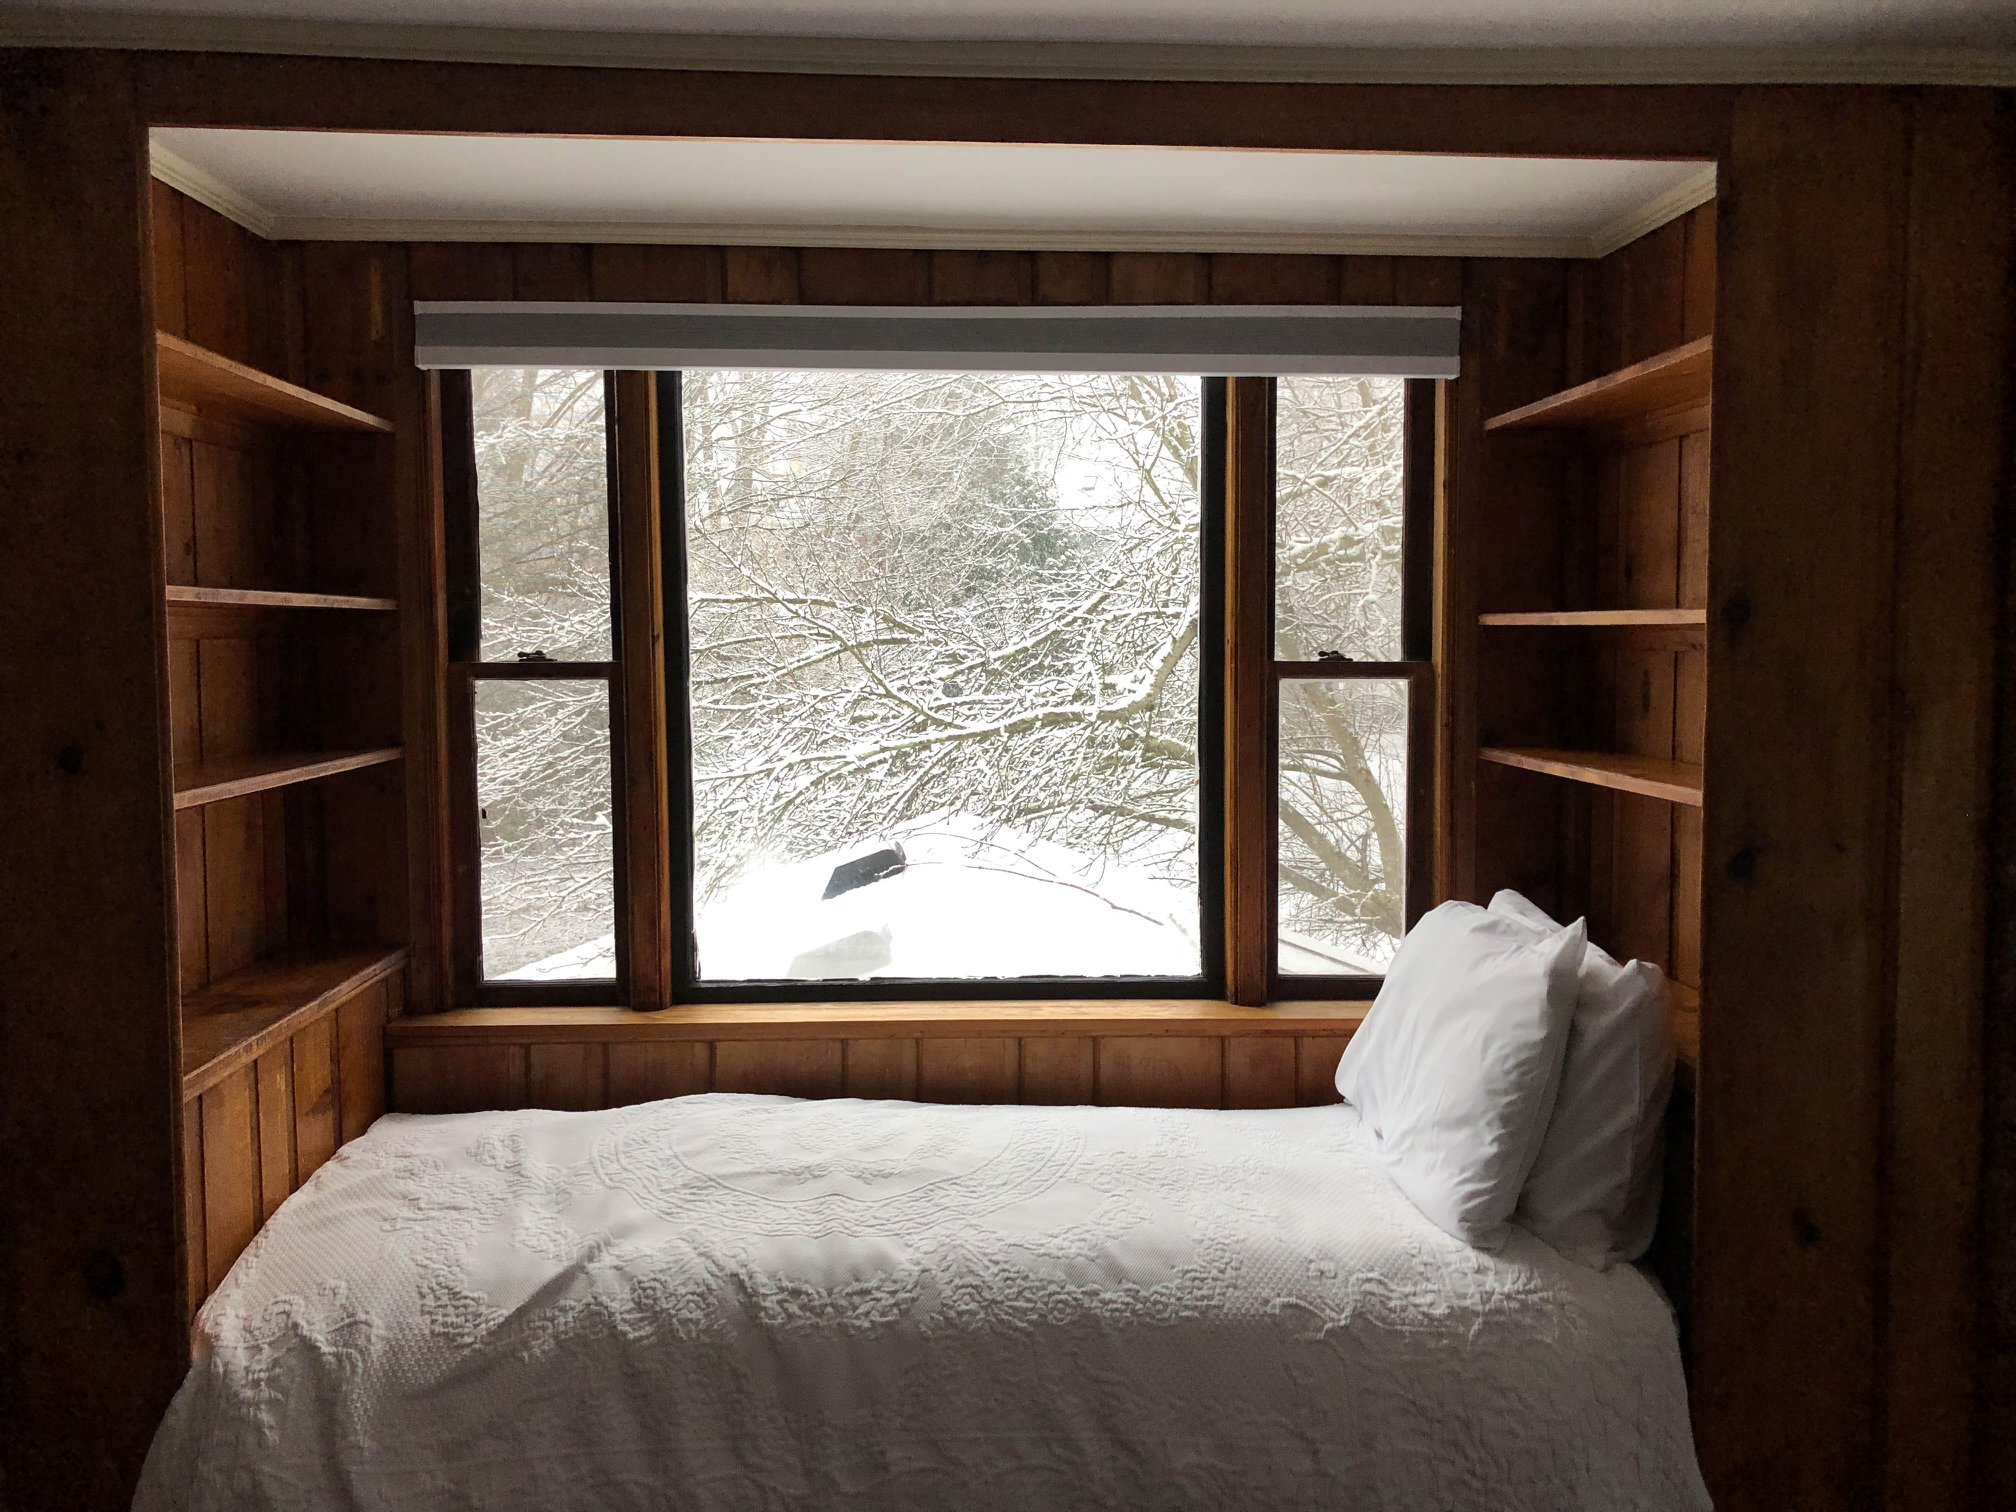 The coziest view to wake up to.